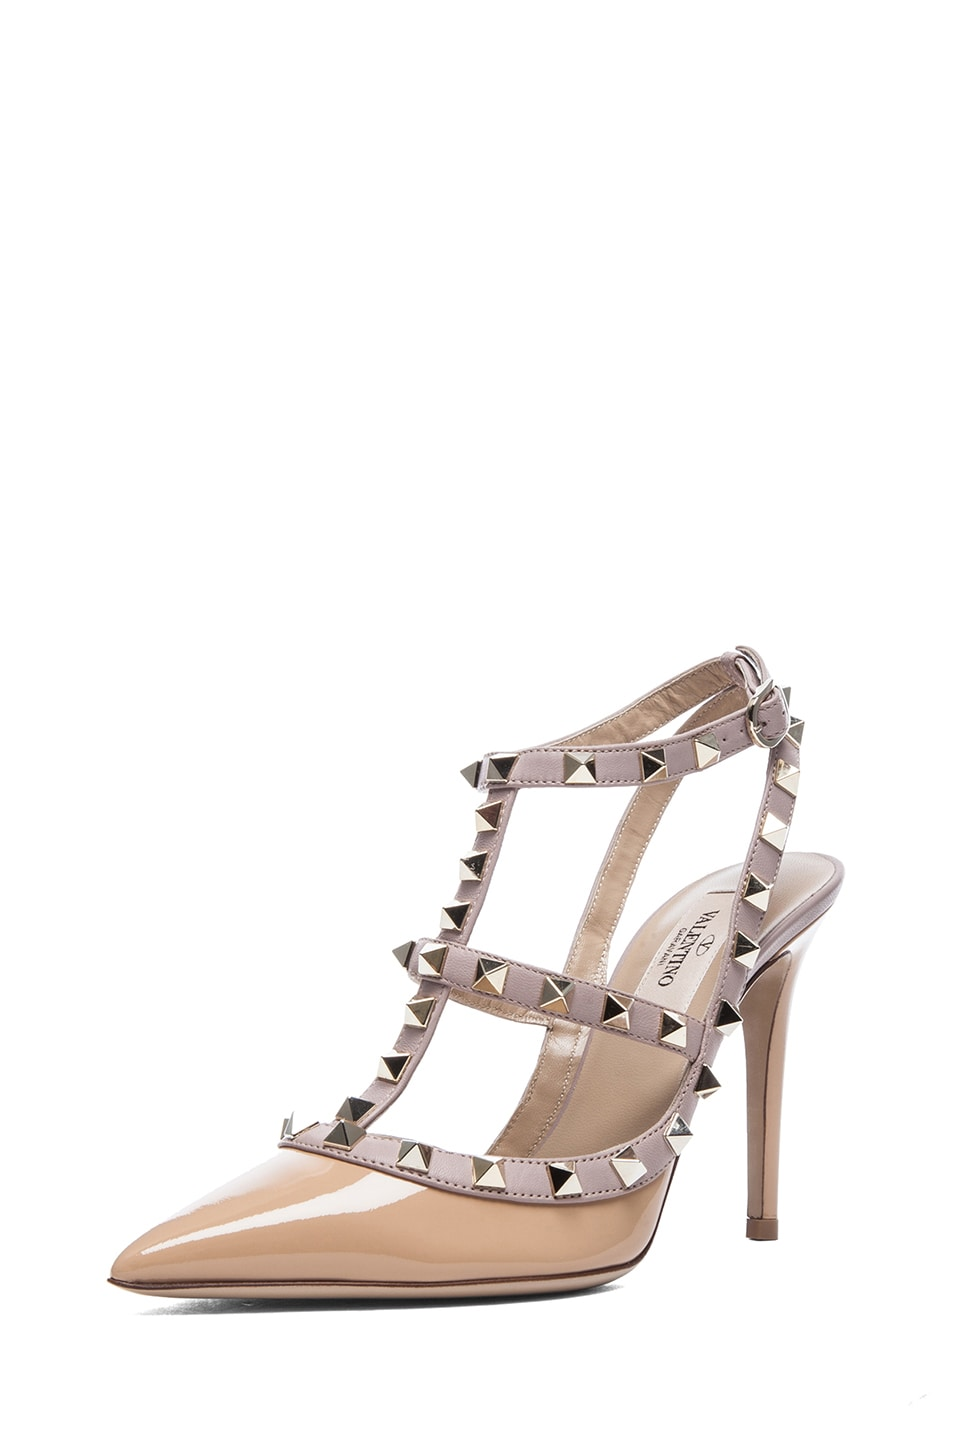 Image 2 of Valentino Rockstud Patent Slingbacks T.100 in Vicuna